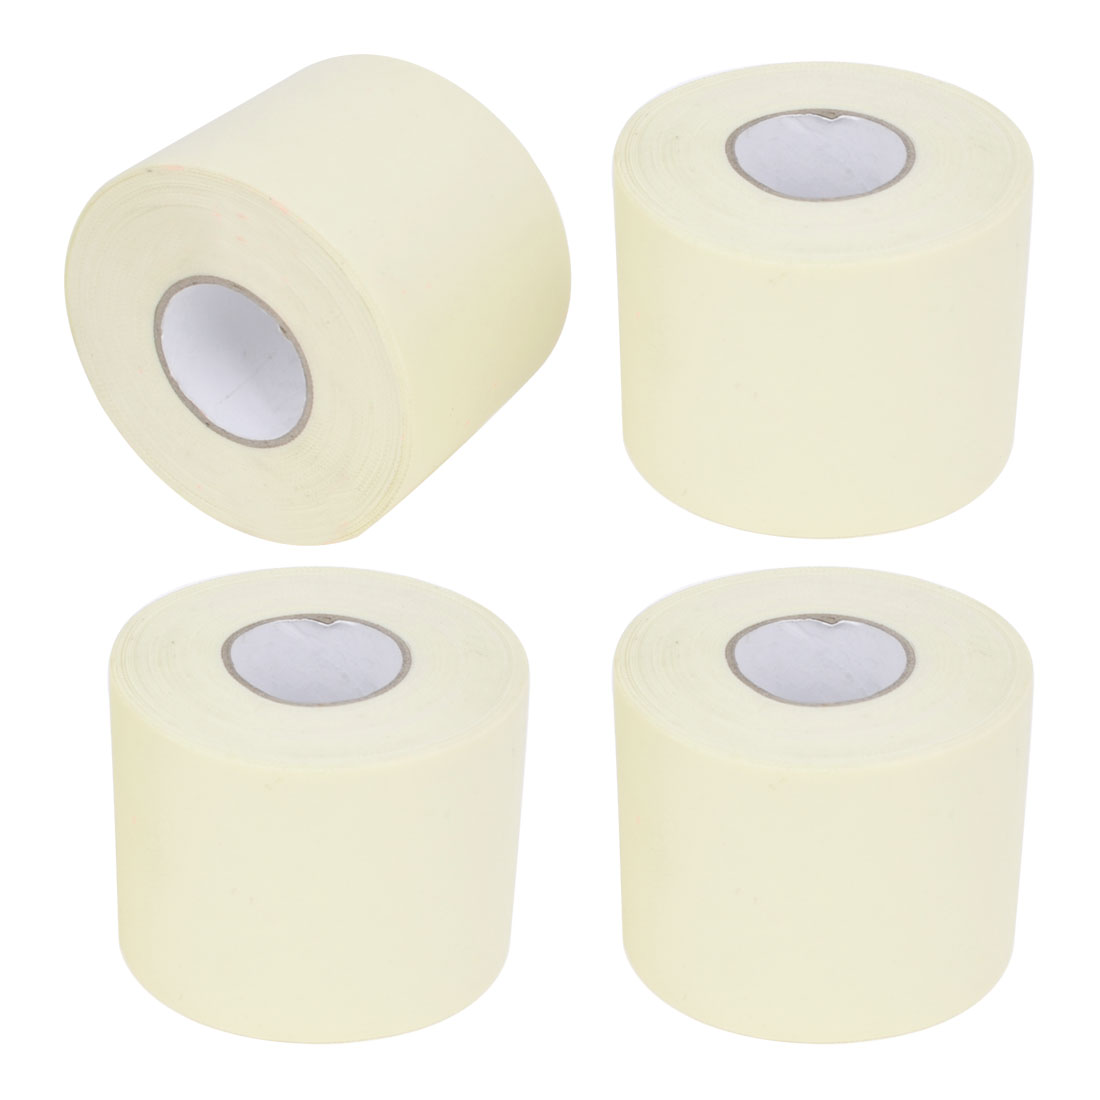 Air Conditioner PVC Pipe Hose Wrapping Tape Roller Ivory 4.6cmx15M 4 Pcs